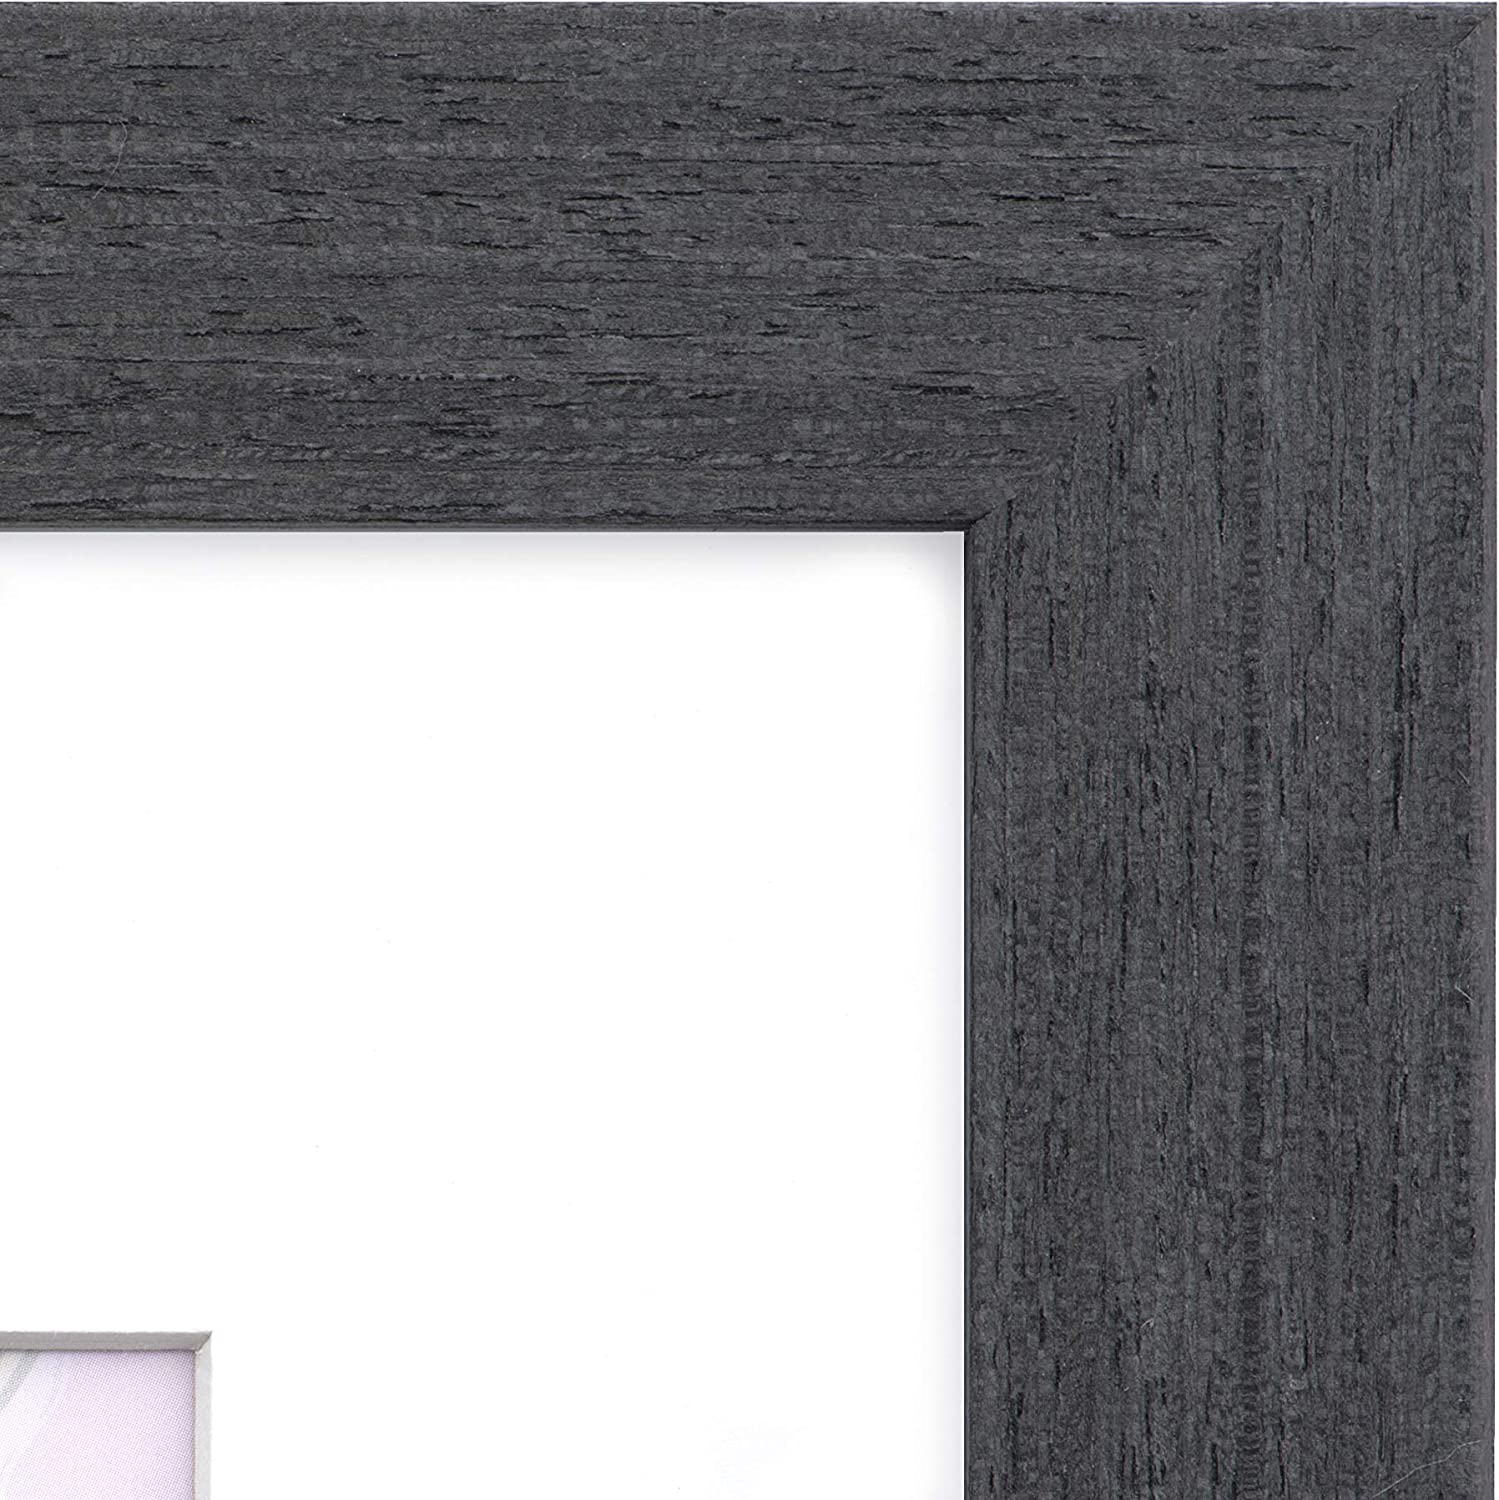 16x20 Frame Rustic Black Frames by EcoHome Matted to 11x14 Picture